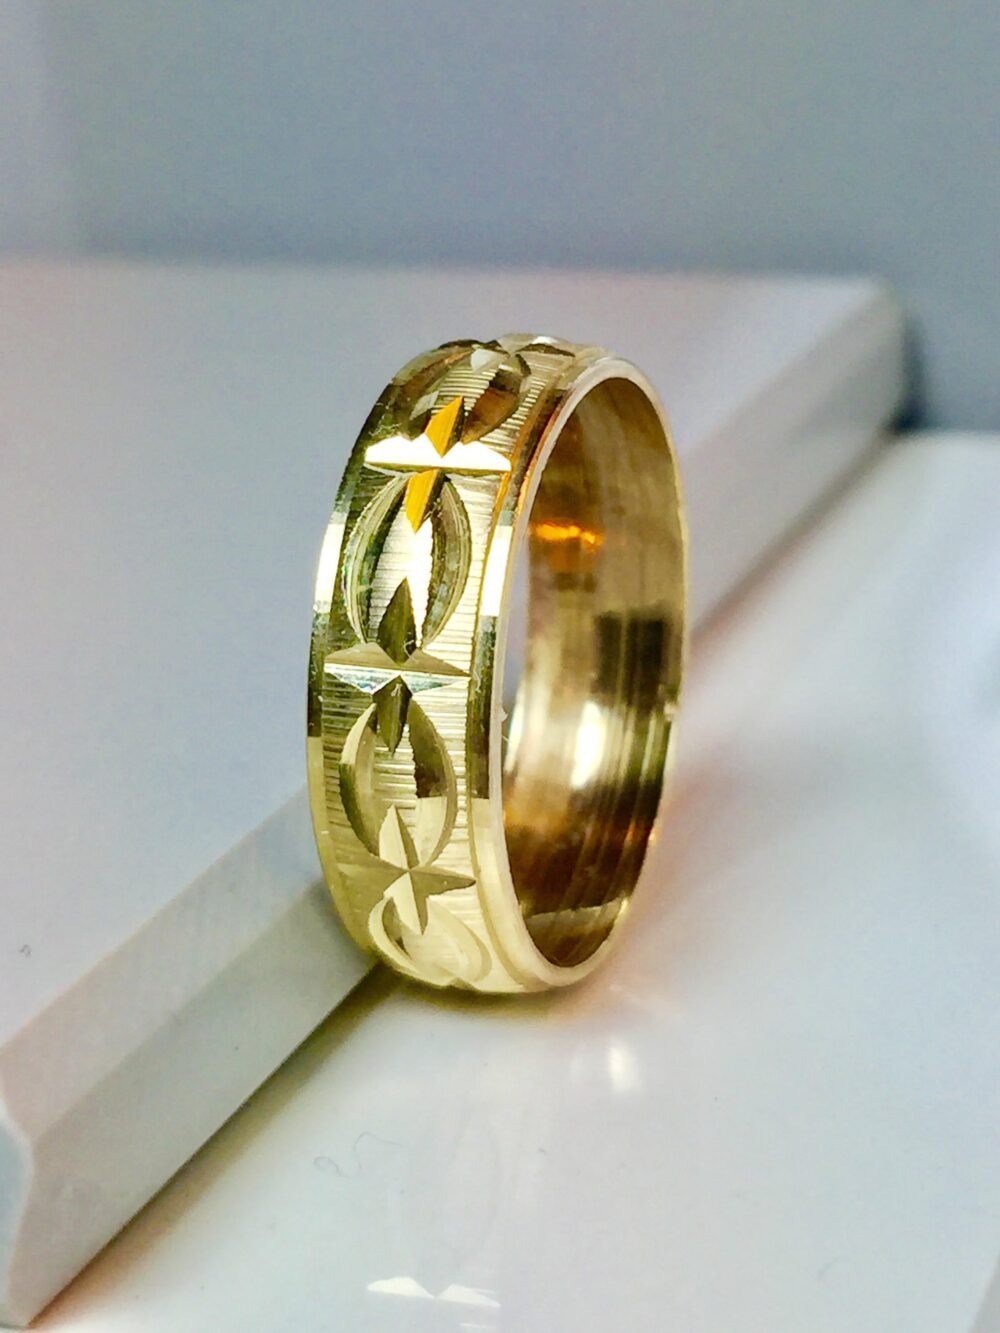 Big Sale - 10K Gold Wedding Band Wedding Rings Gifts For Him Friendship Jewelry Bands Men's Bands Awsome Rings